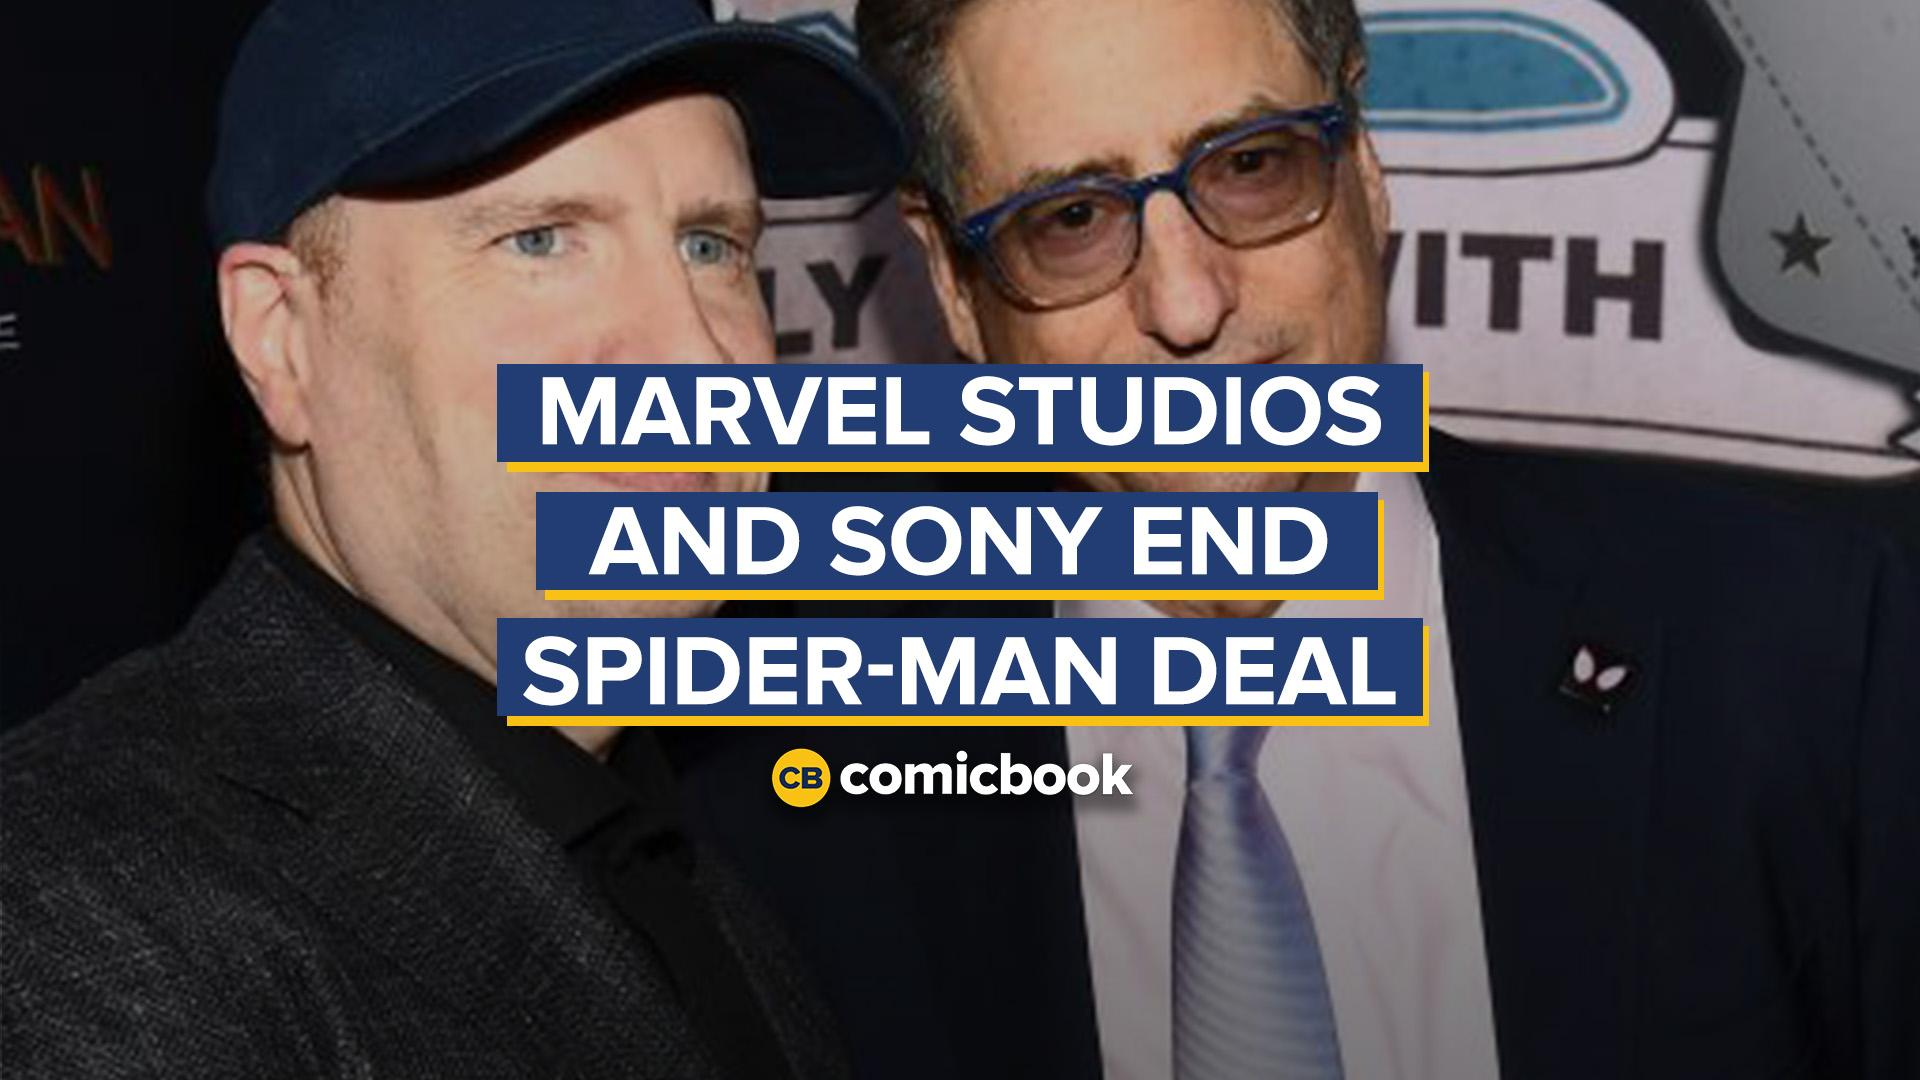 Marvel Studios and Sony End Spider-Man Deal screen capture